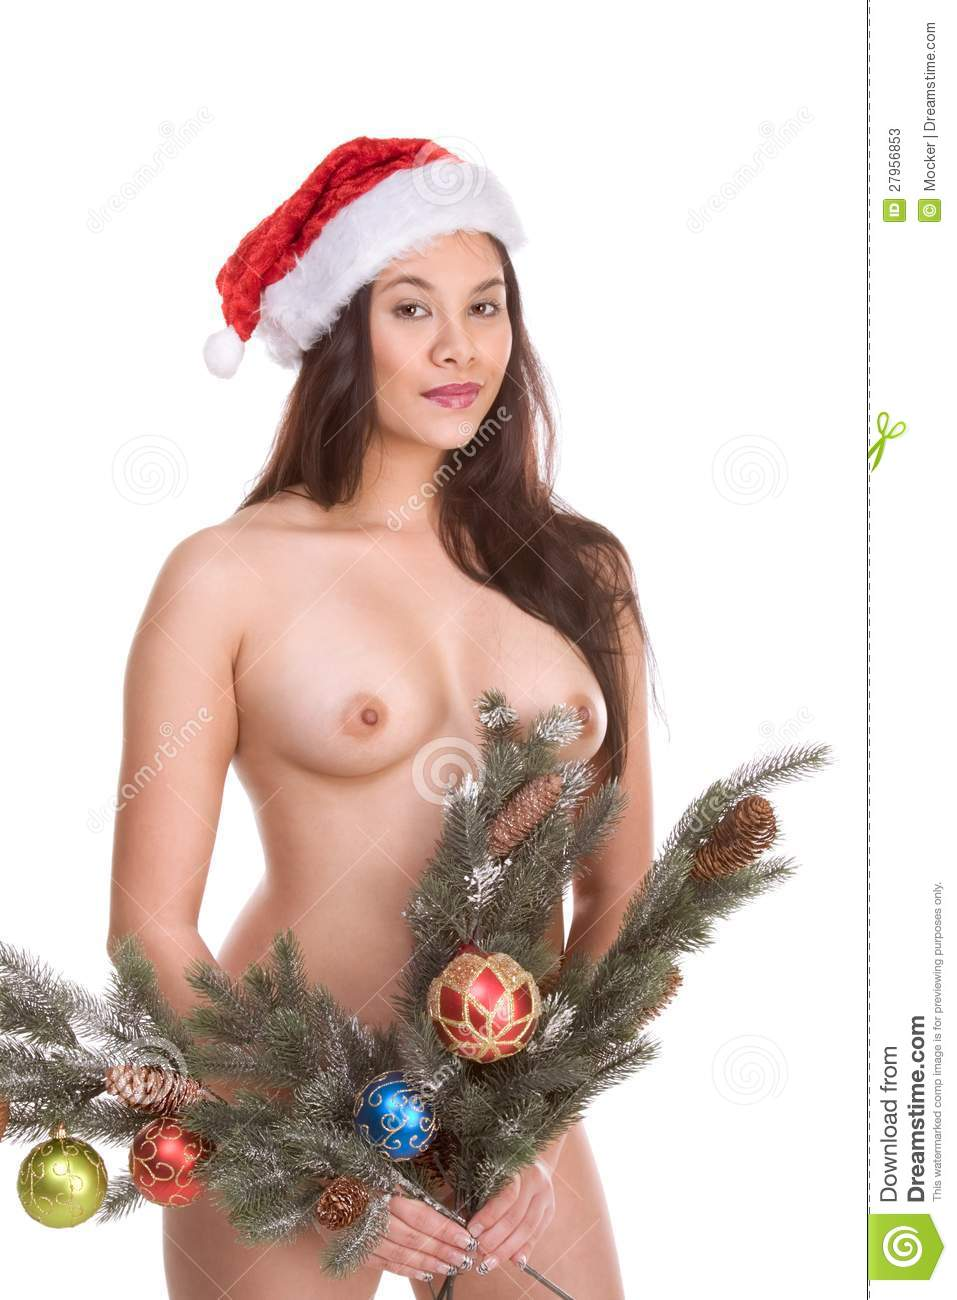 Nude Asian Woman Branches Of Christmas Tree Stock Image - Image of ...